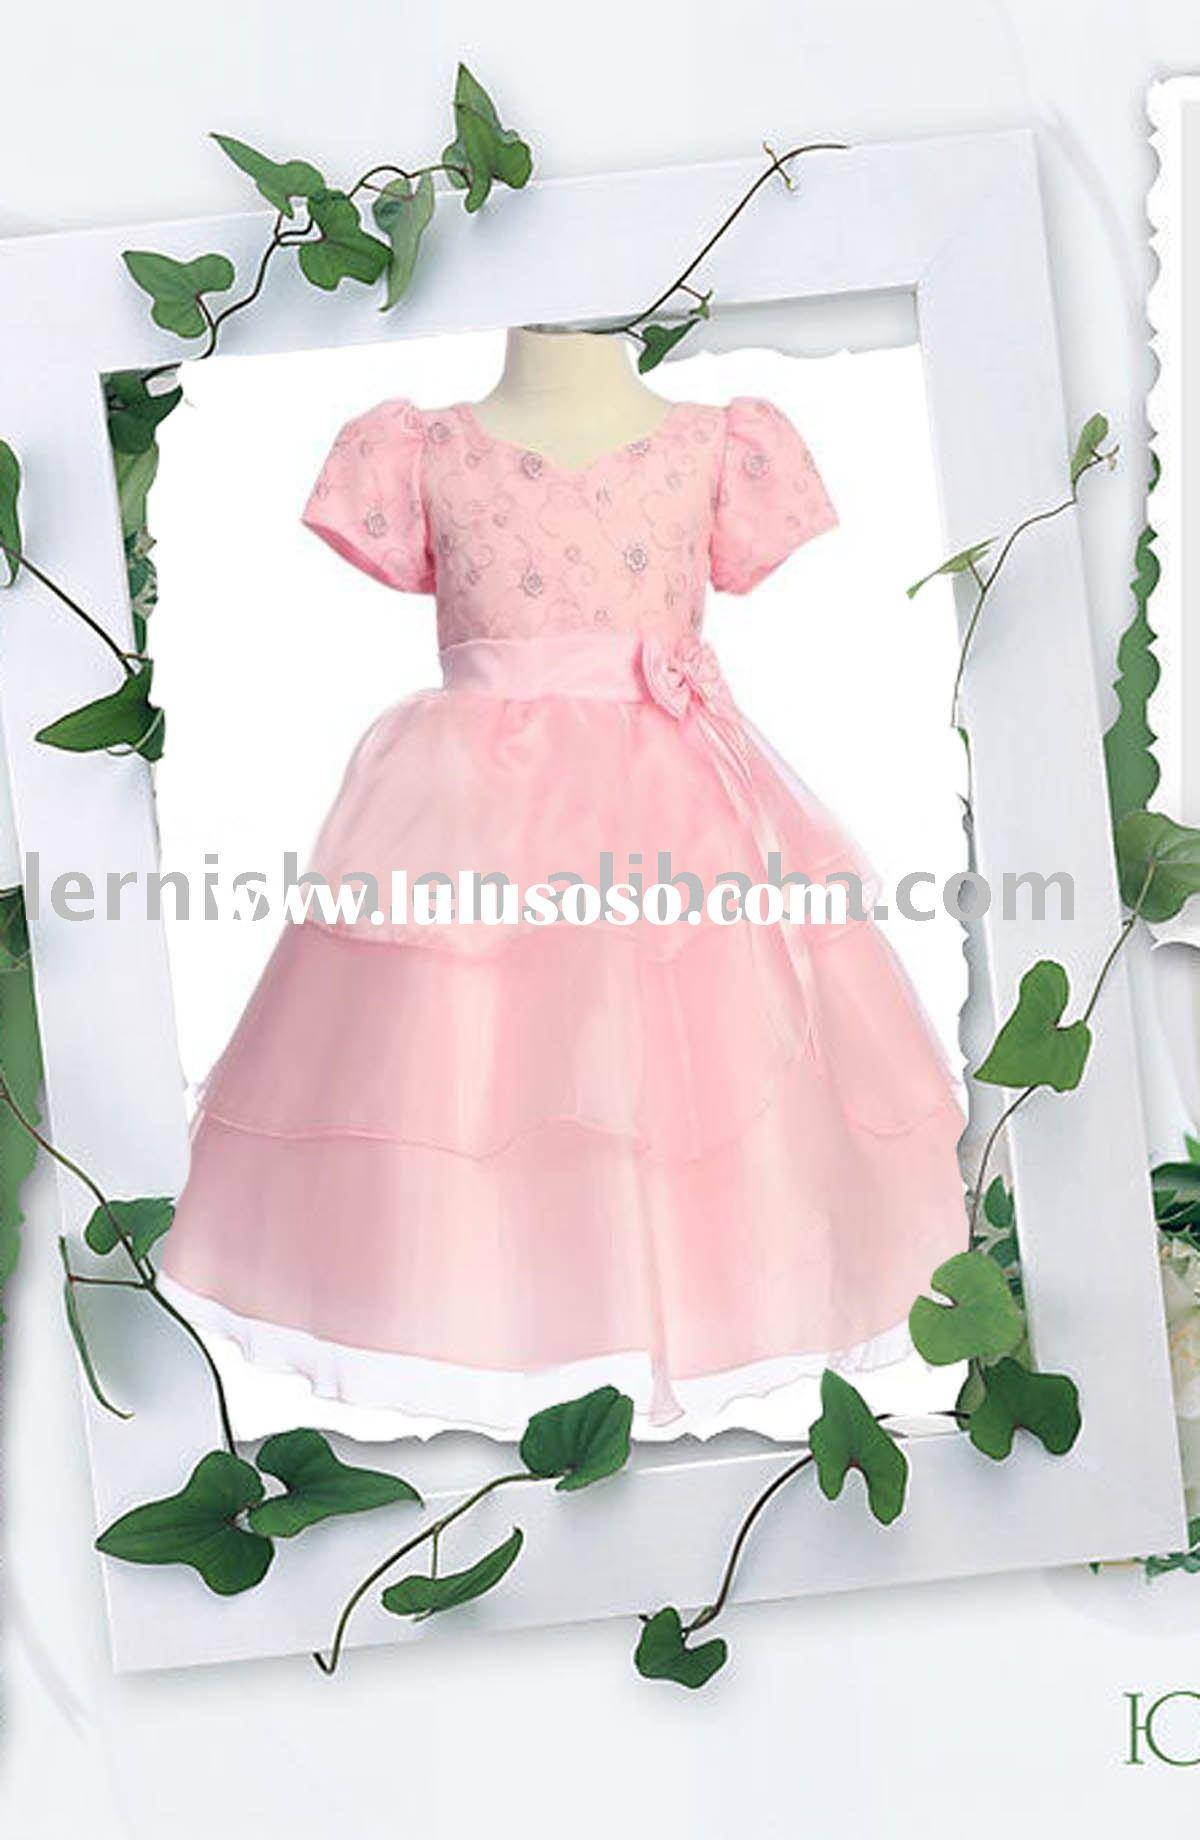 pink embroidered flower girls' dresses, cap sleeve dresses H207